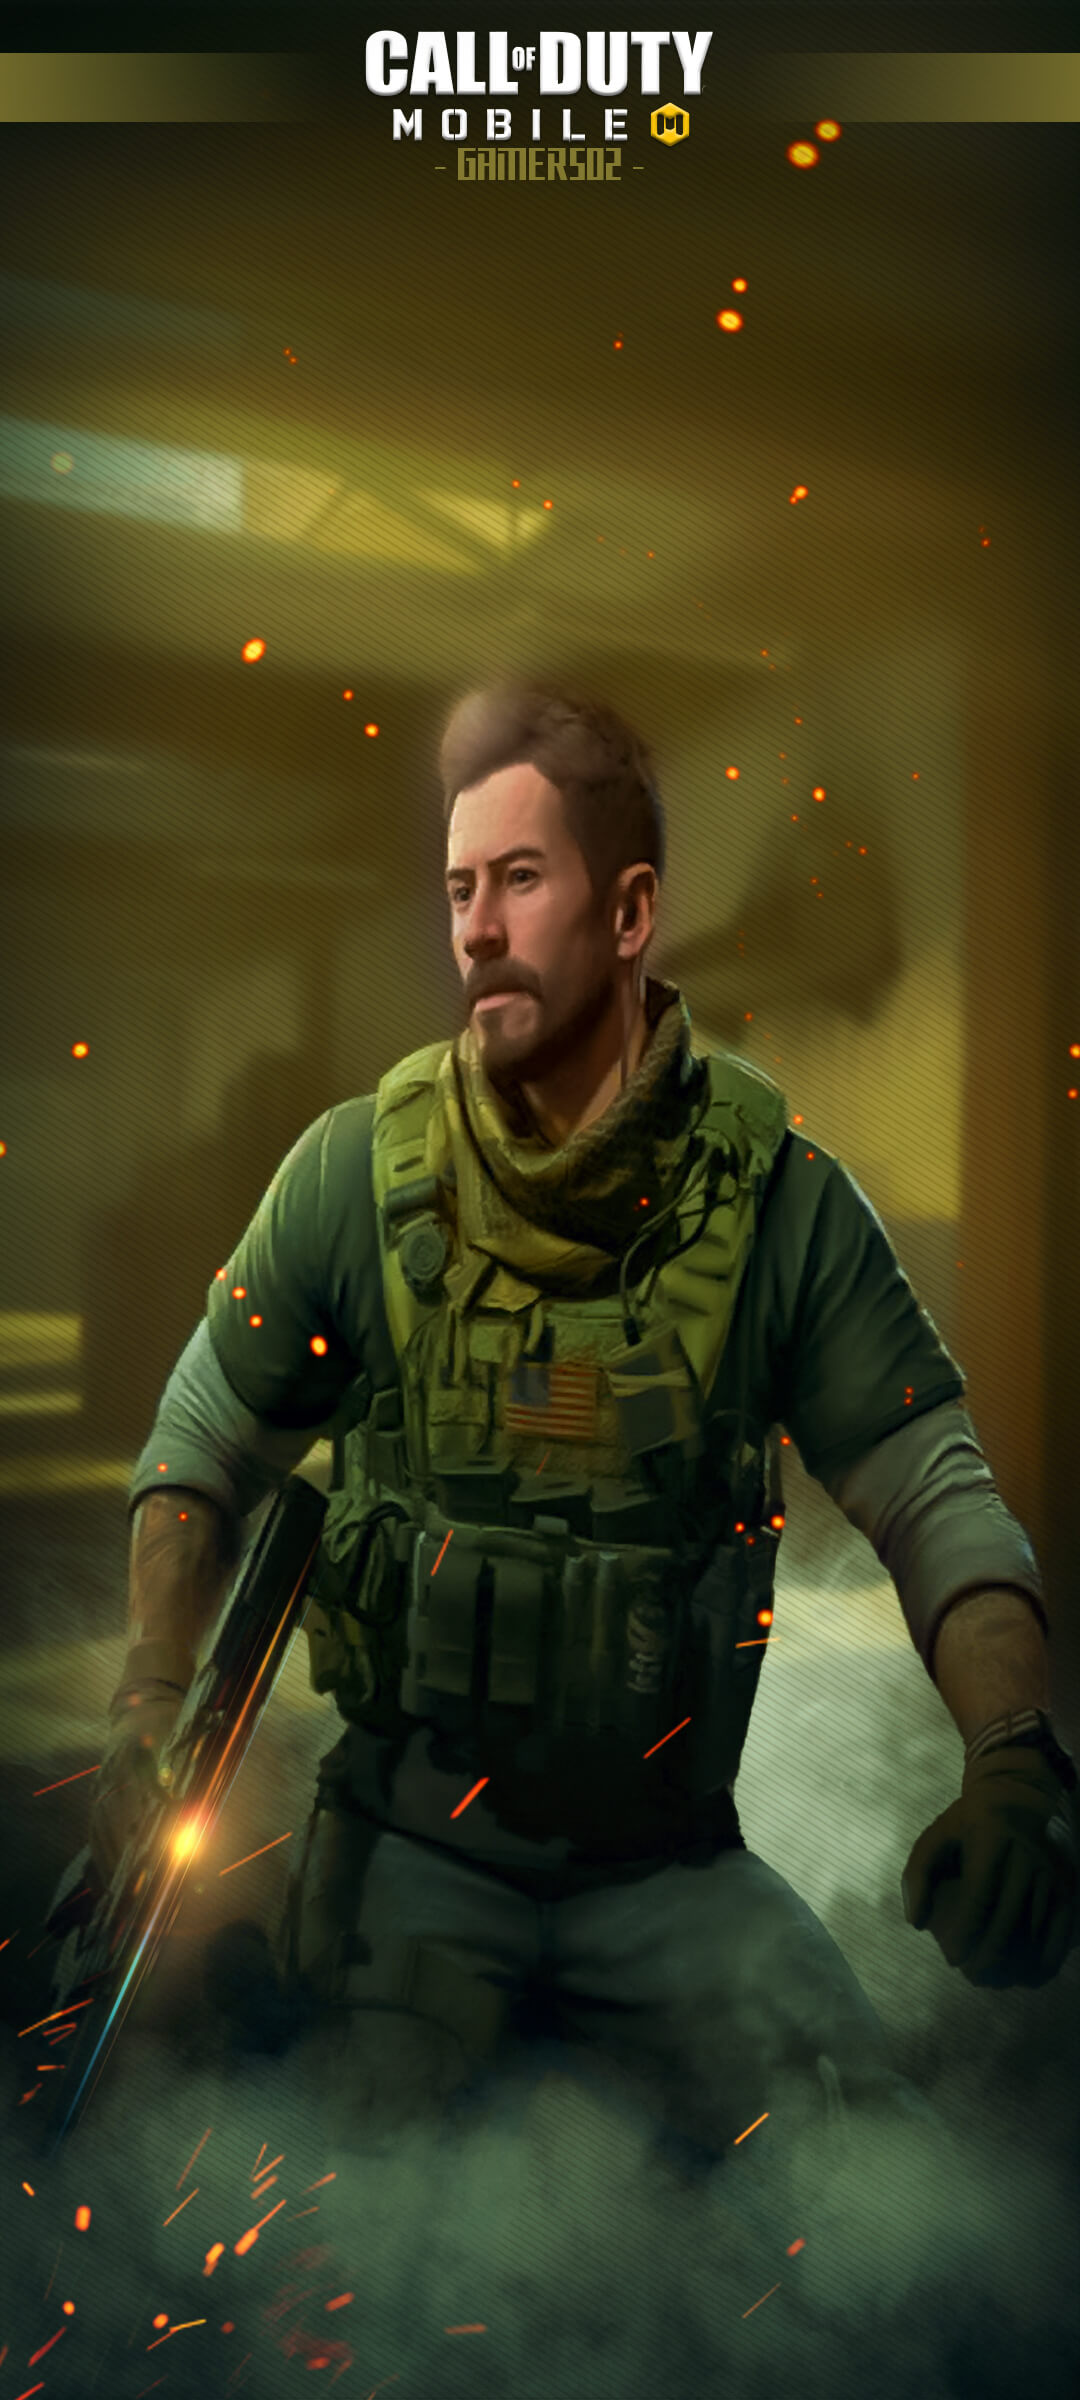 Alex Wallpapers COD Mobile